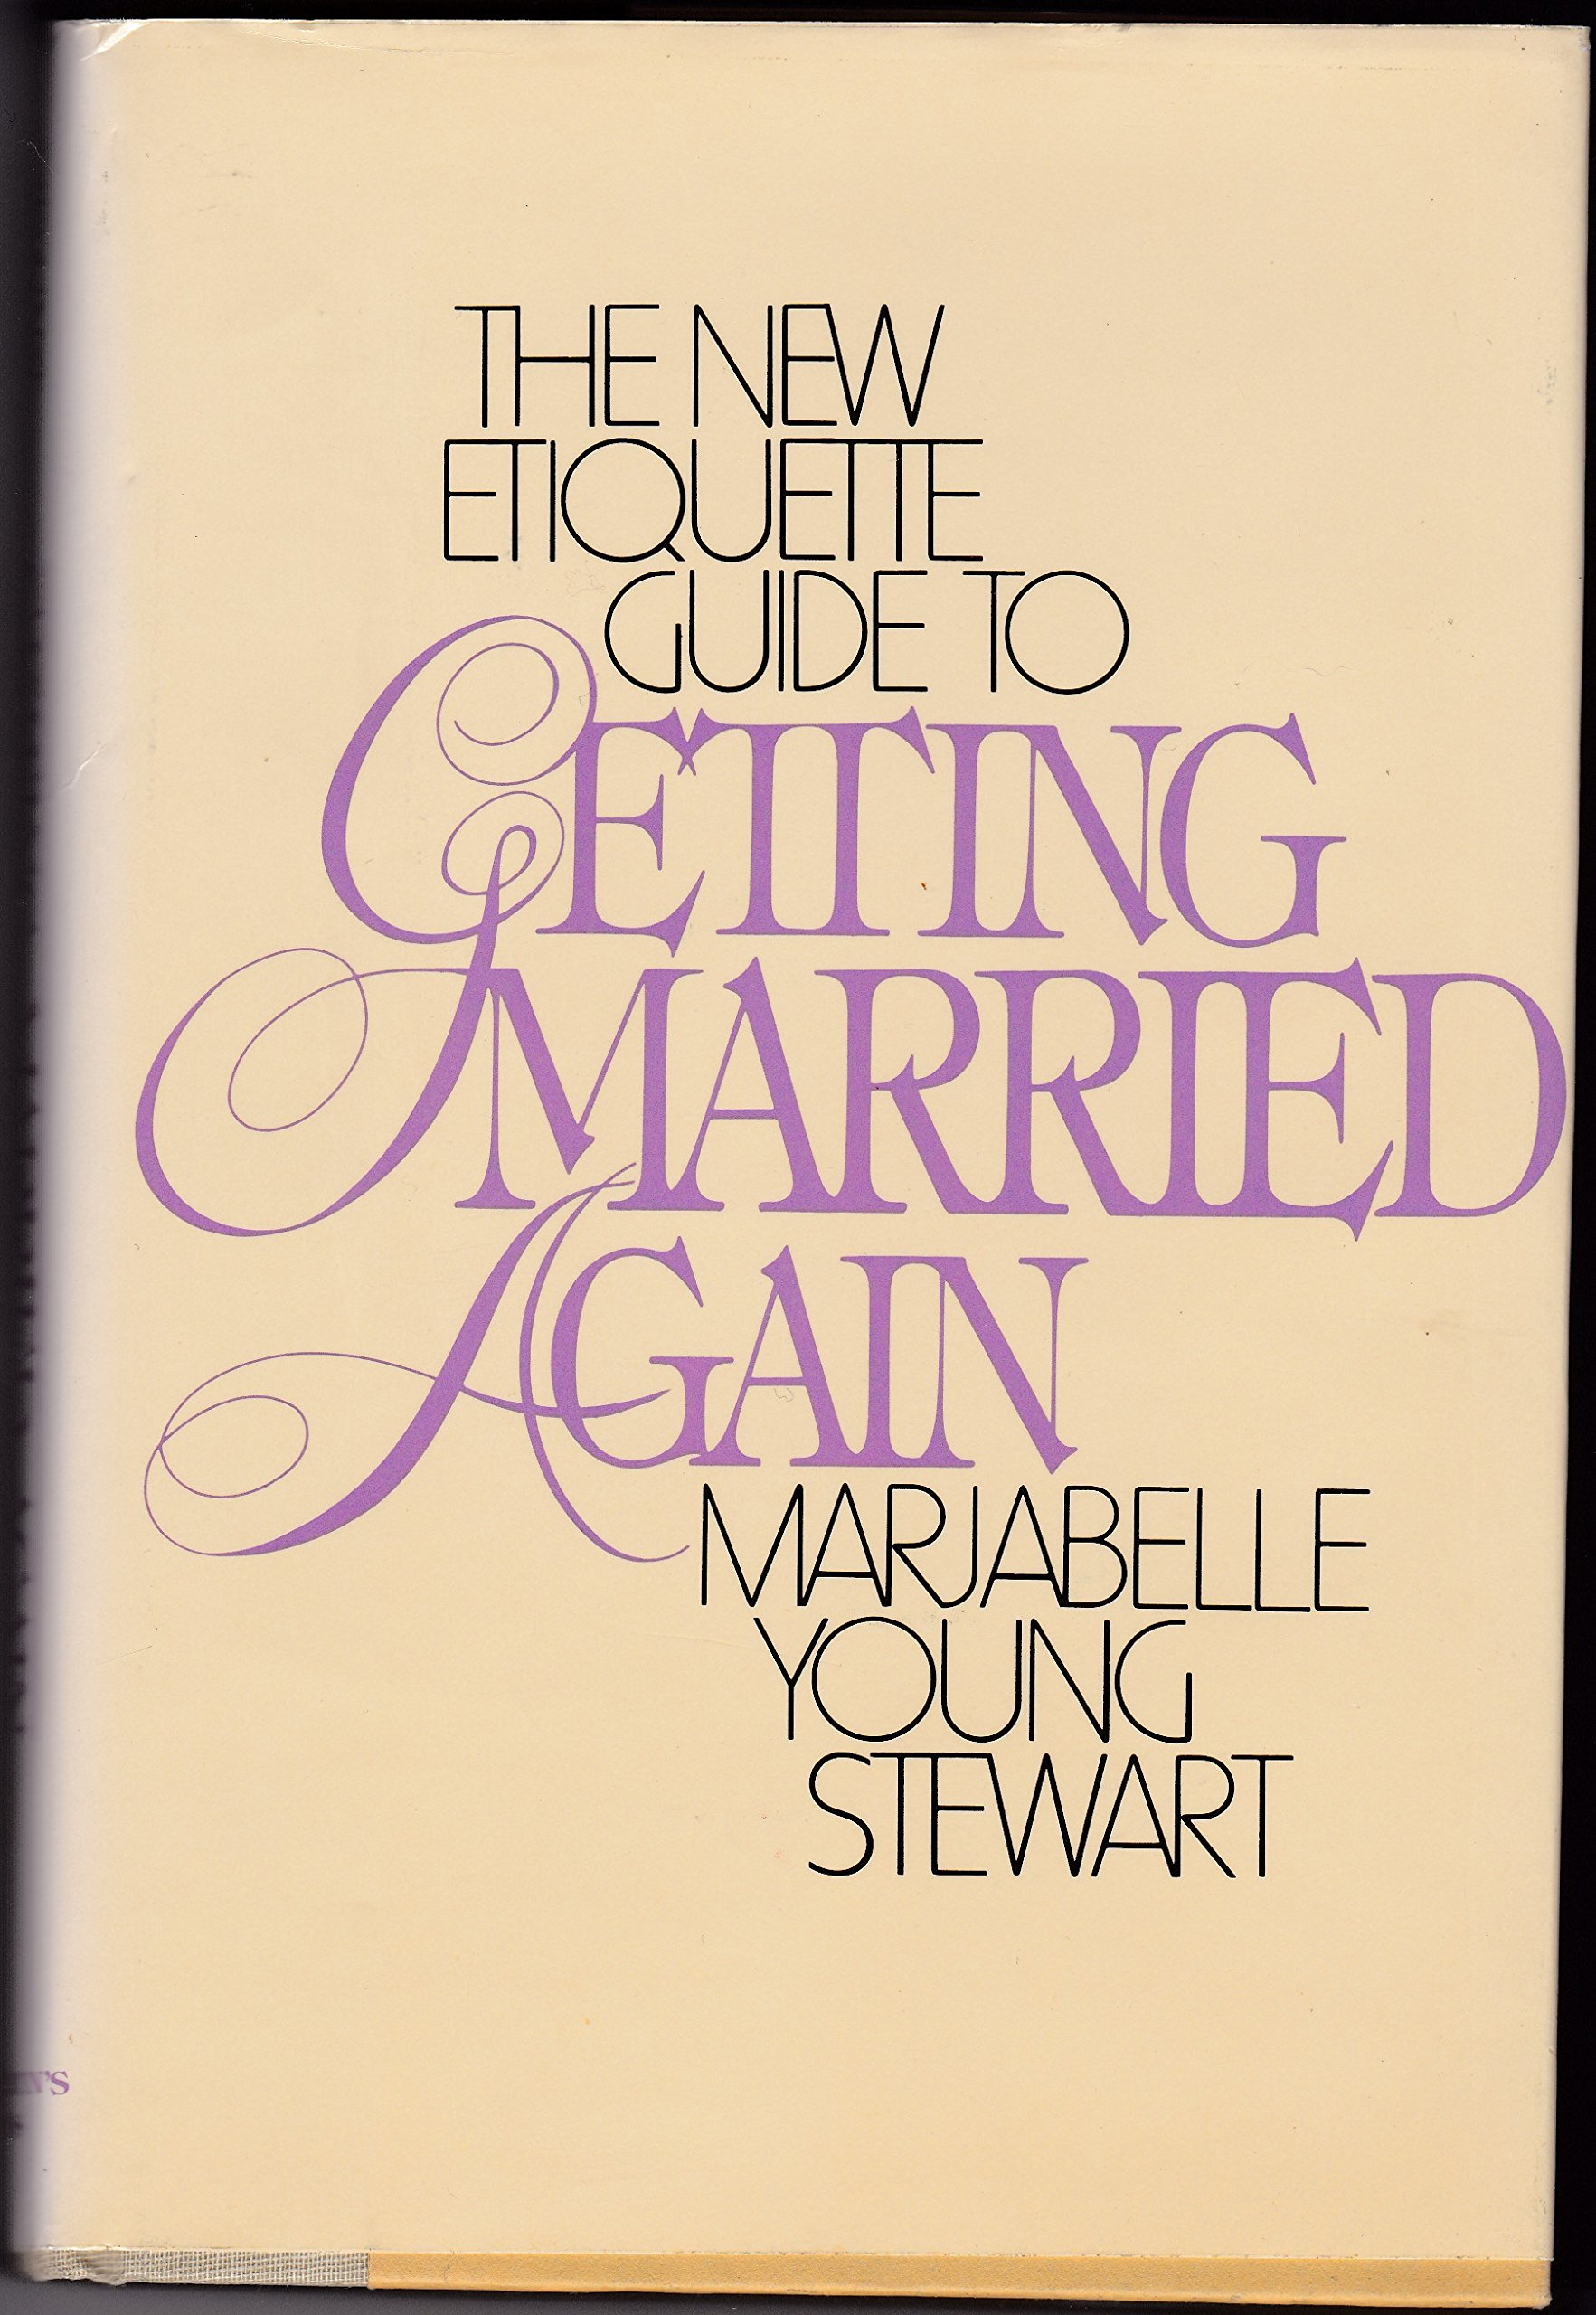 The New Etiquette Guide to Getting Married Again